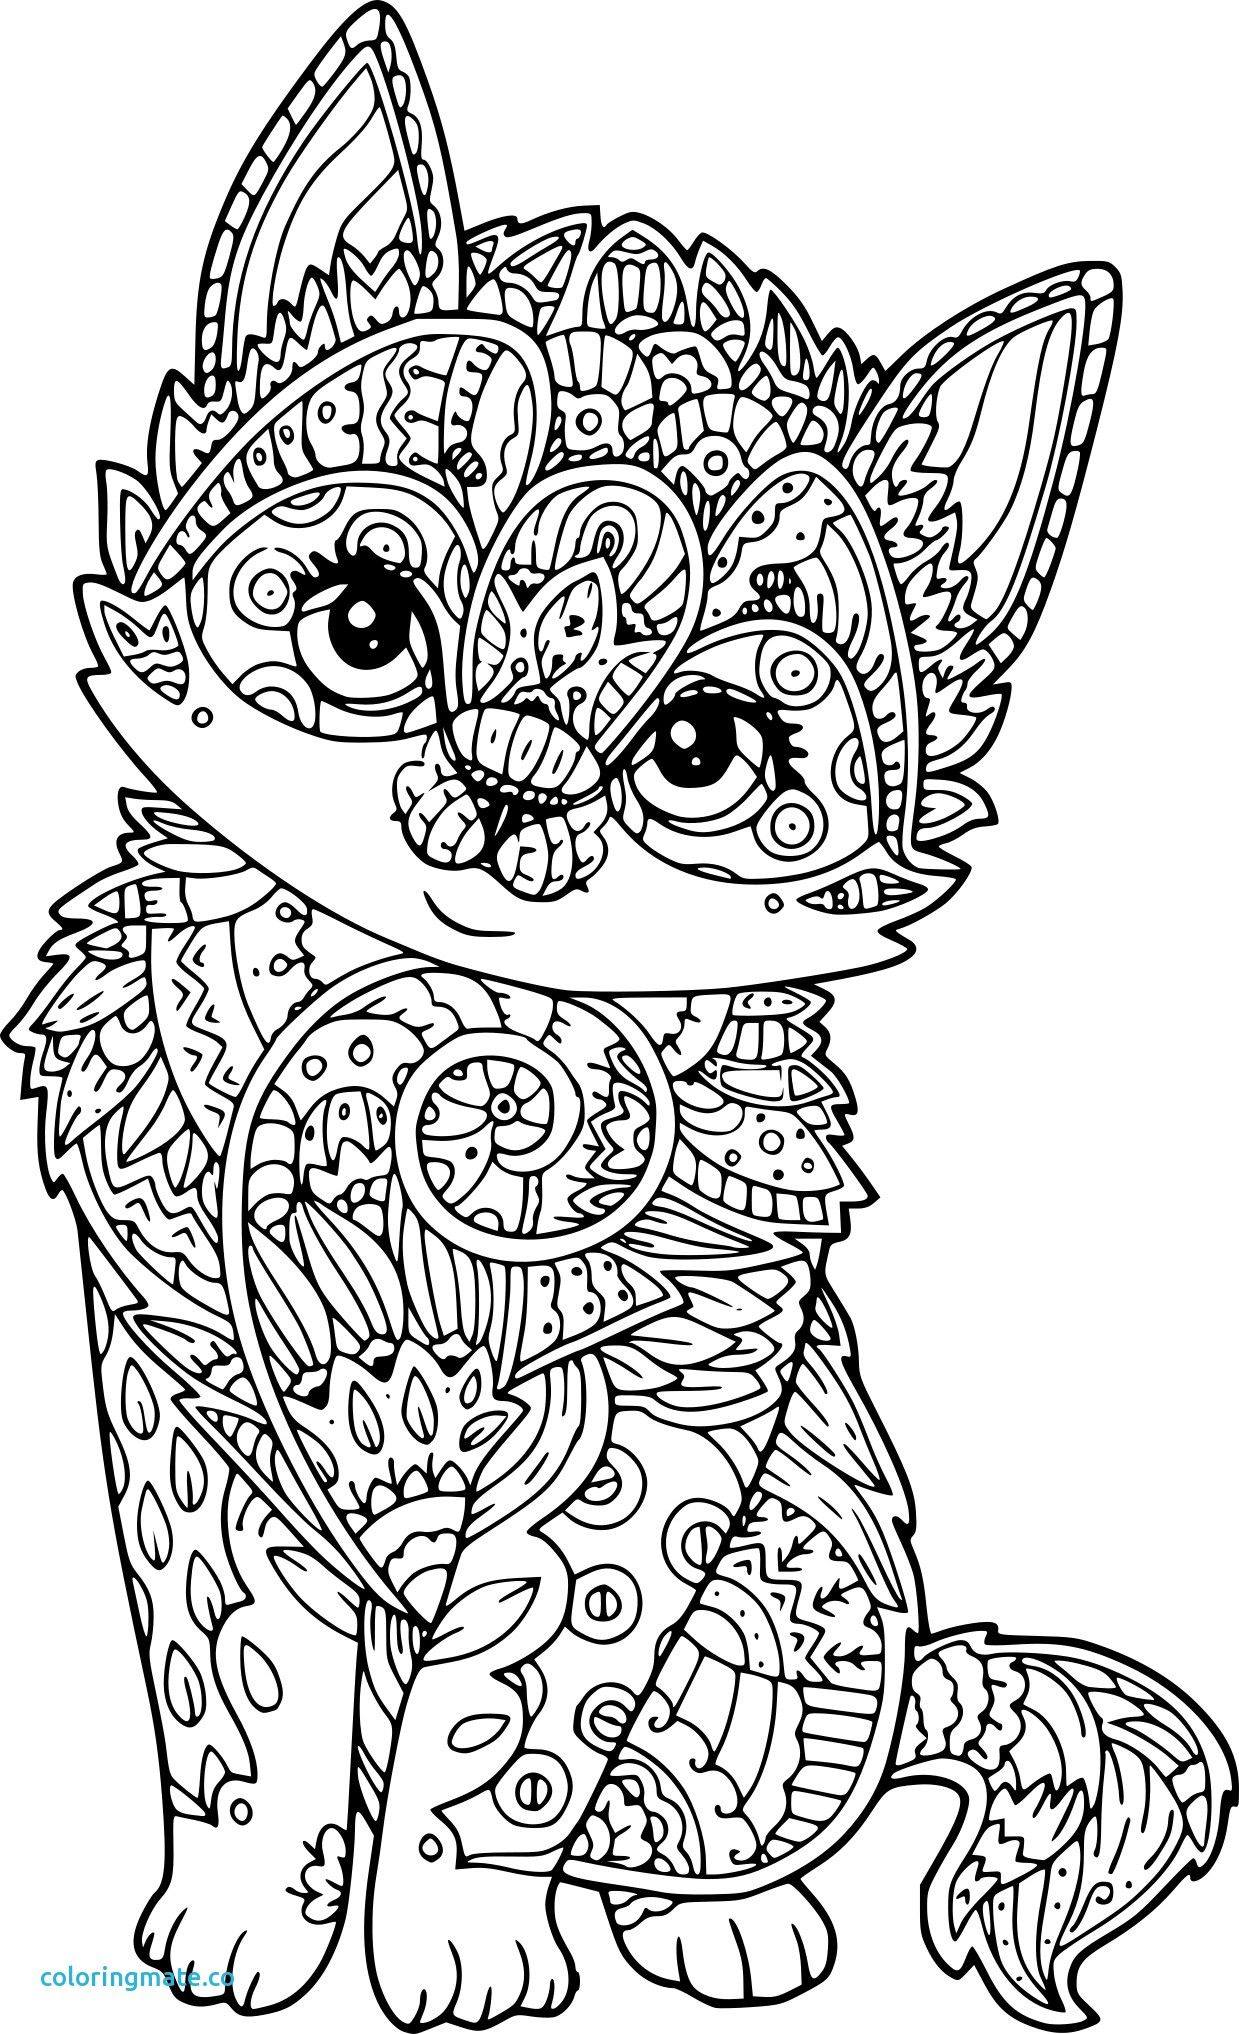 Coloriage mandala chat papillon fresh coloriage chat antistress a imprimer sur coloriages info - Coloriage a imprimer panda ...